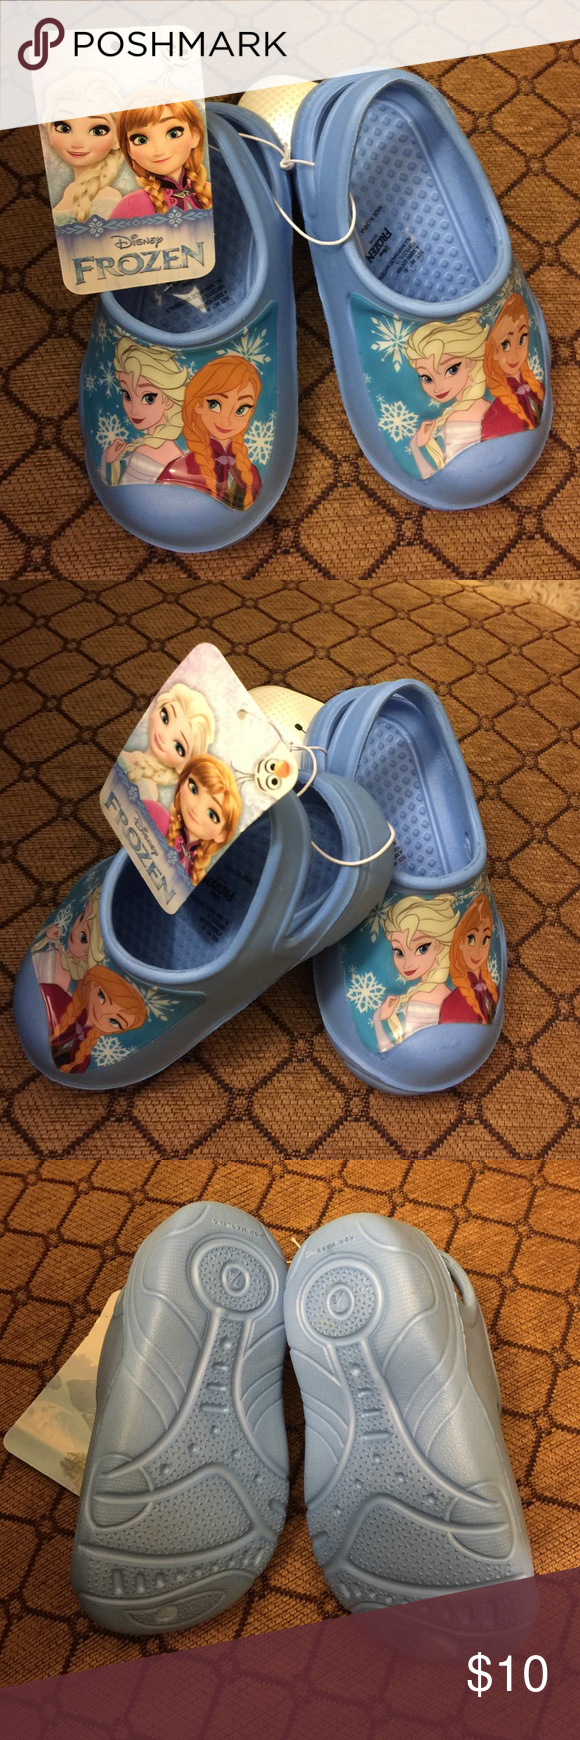 Shoe Disney Frozen kids clog for size 7-8 in sky blue color.  Brand new never been worn. Excellent condition. No Trades. Disney Frozen Shoes Mules & Clogs